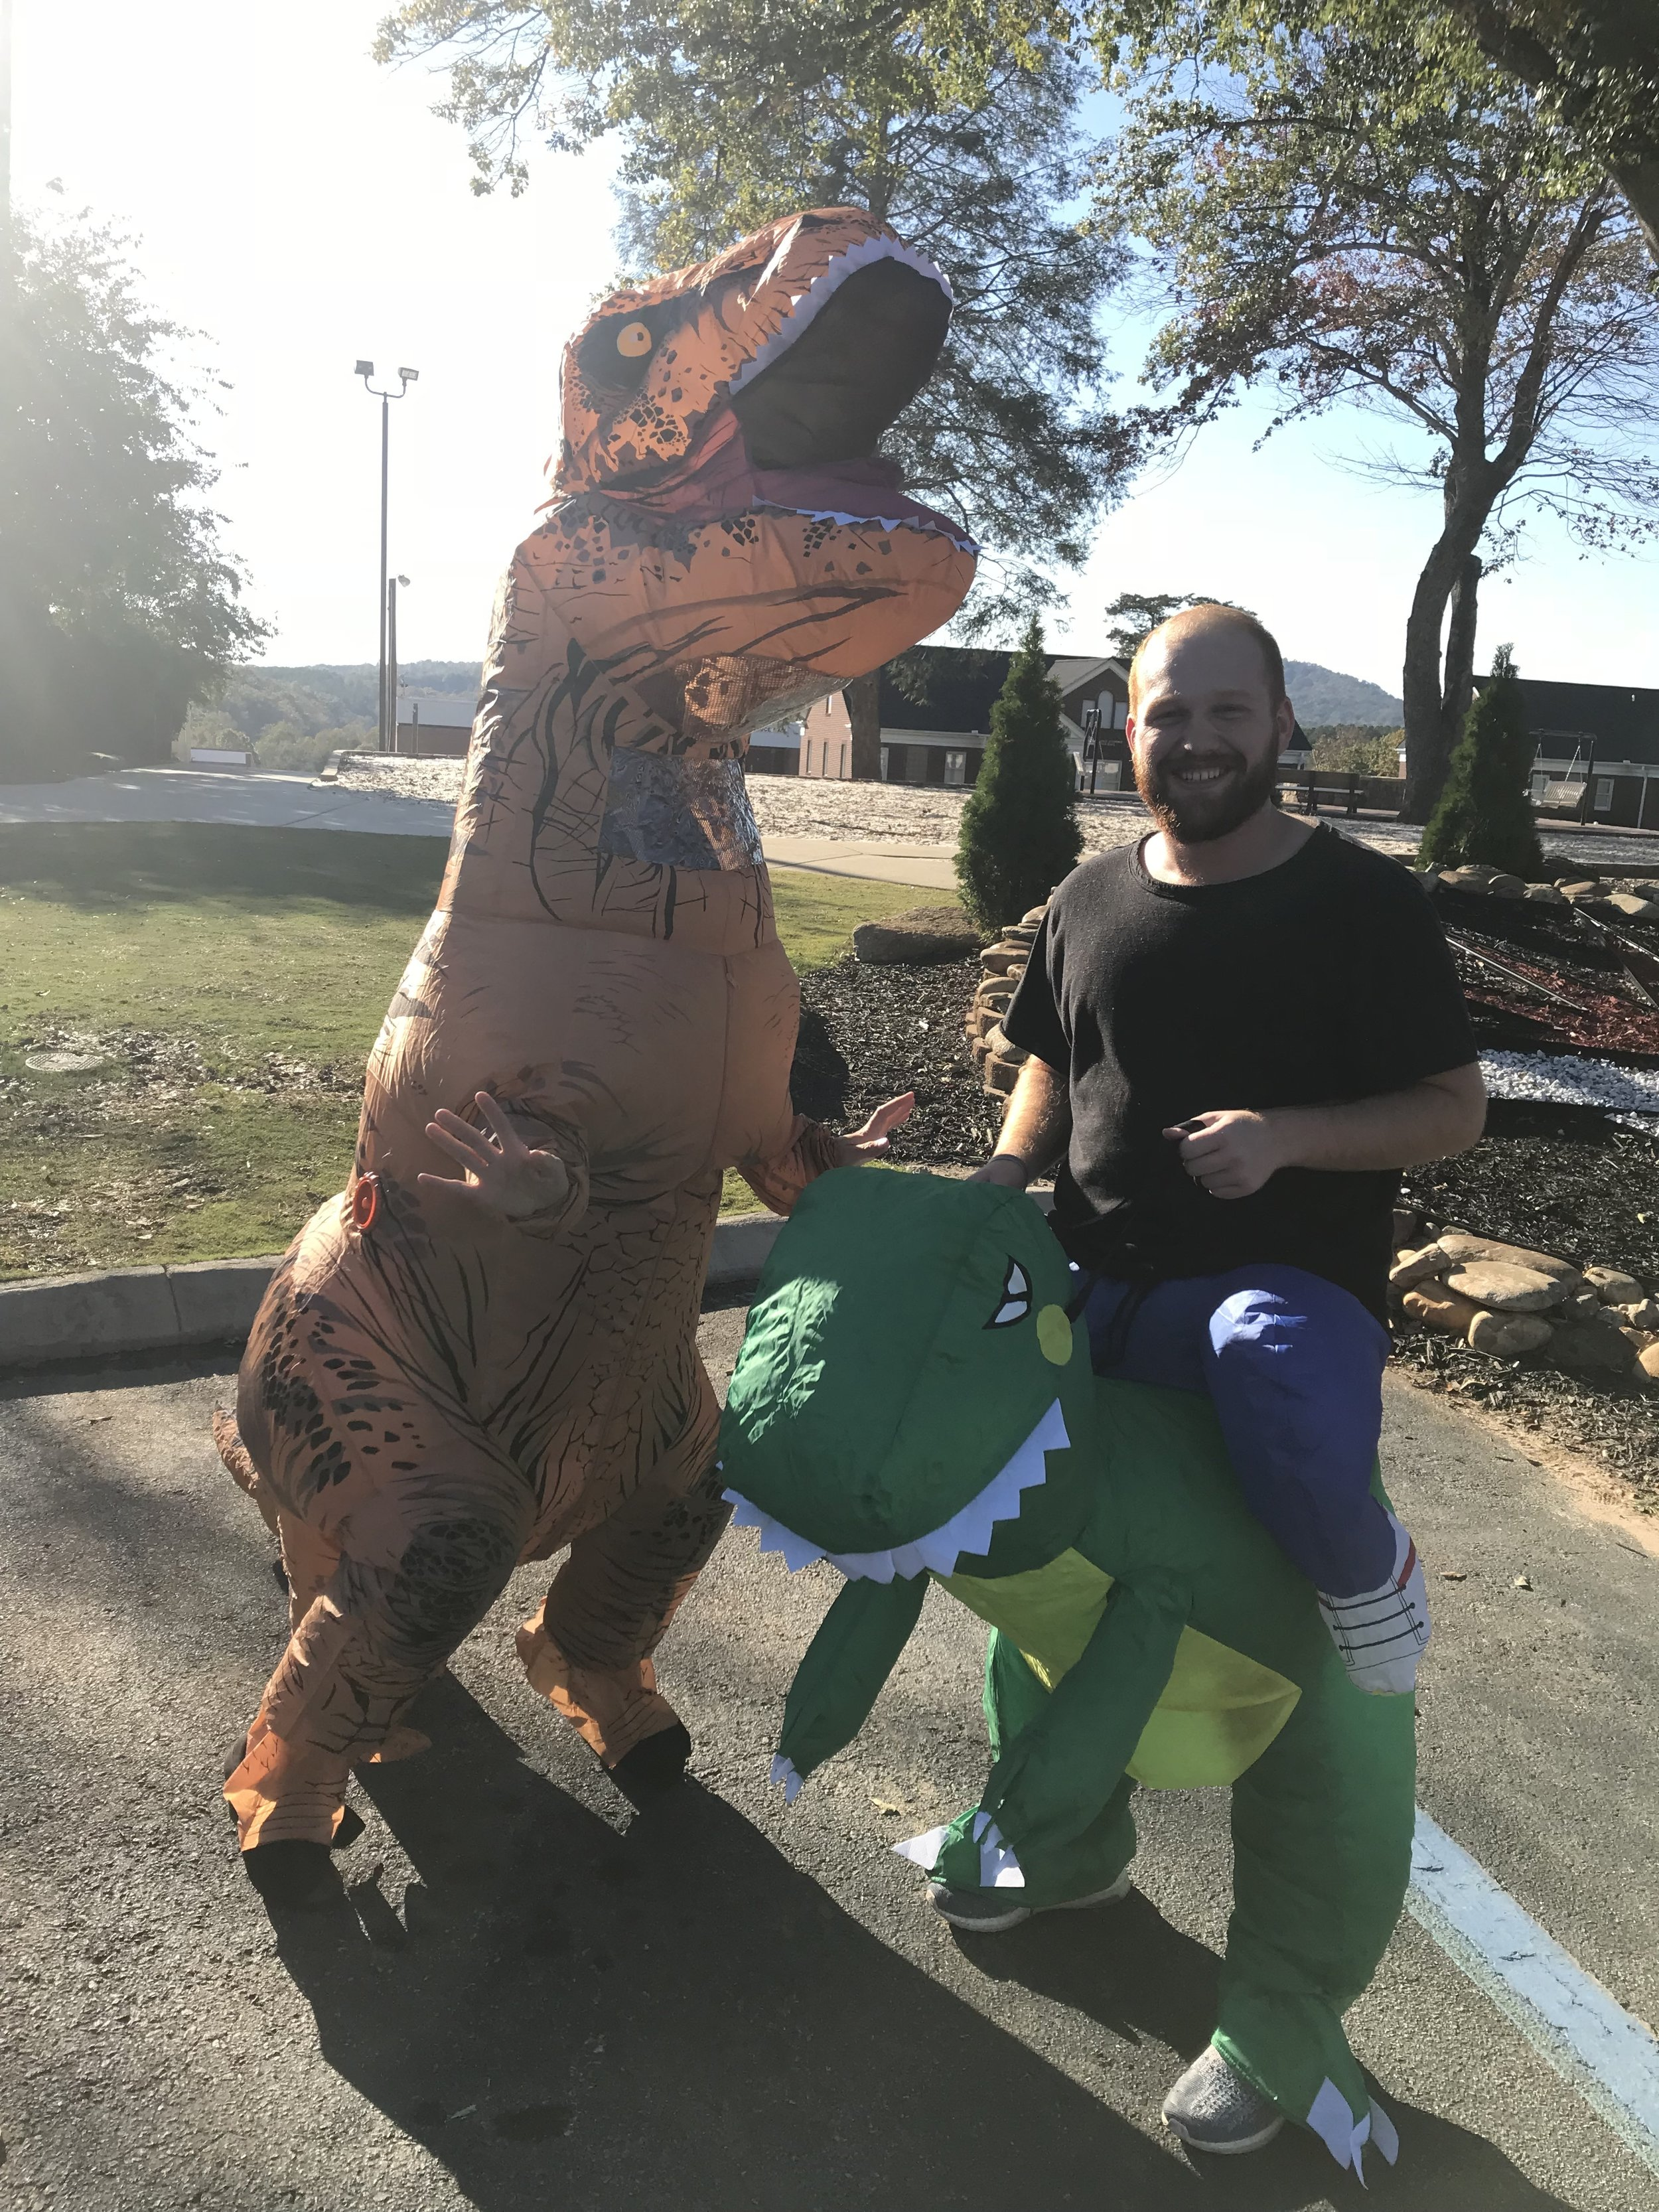 On occasion, Danny has the opportunity to meet a new dinosaur friend.